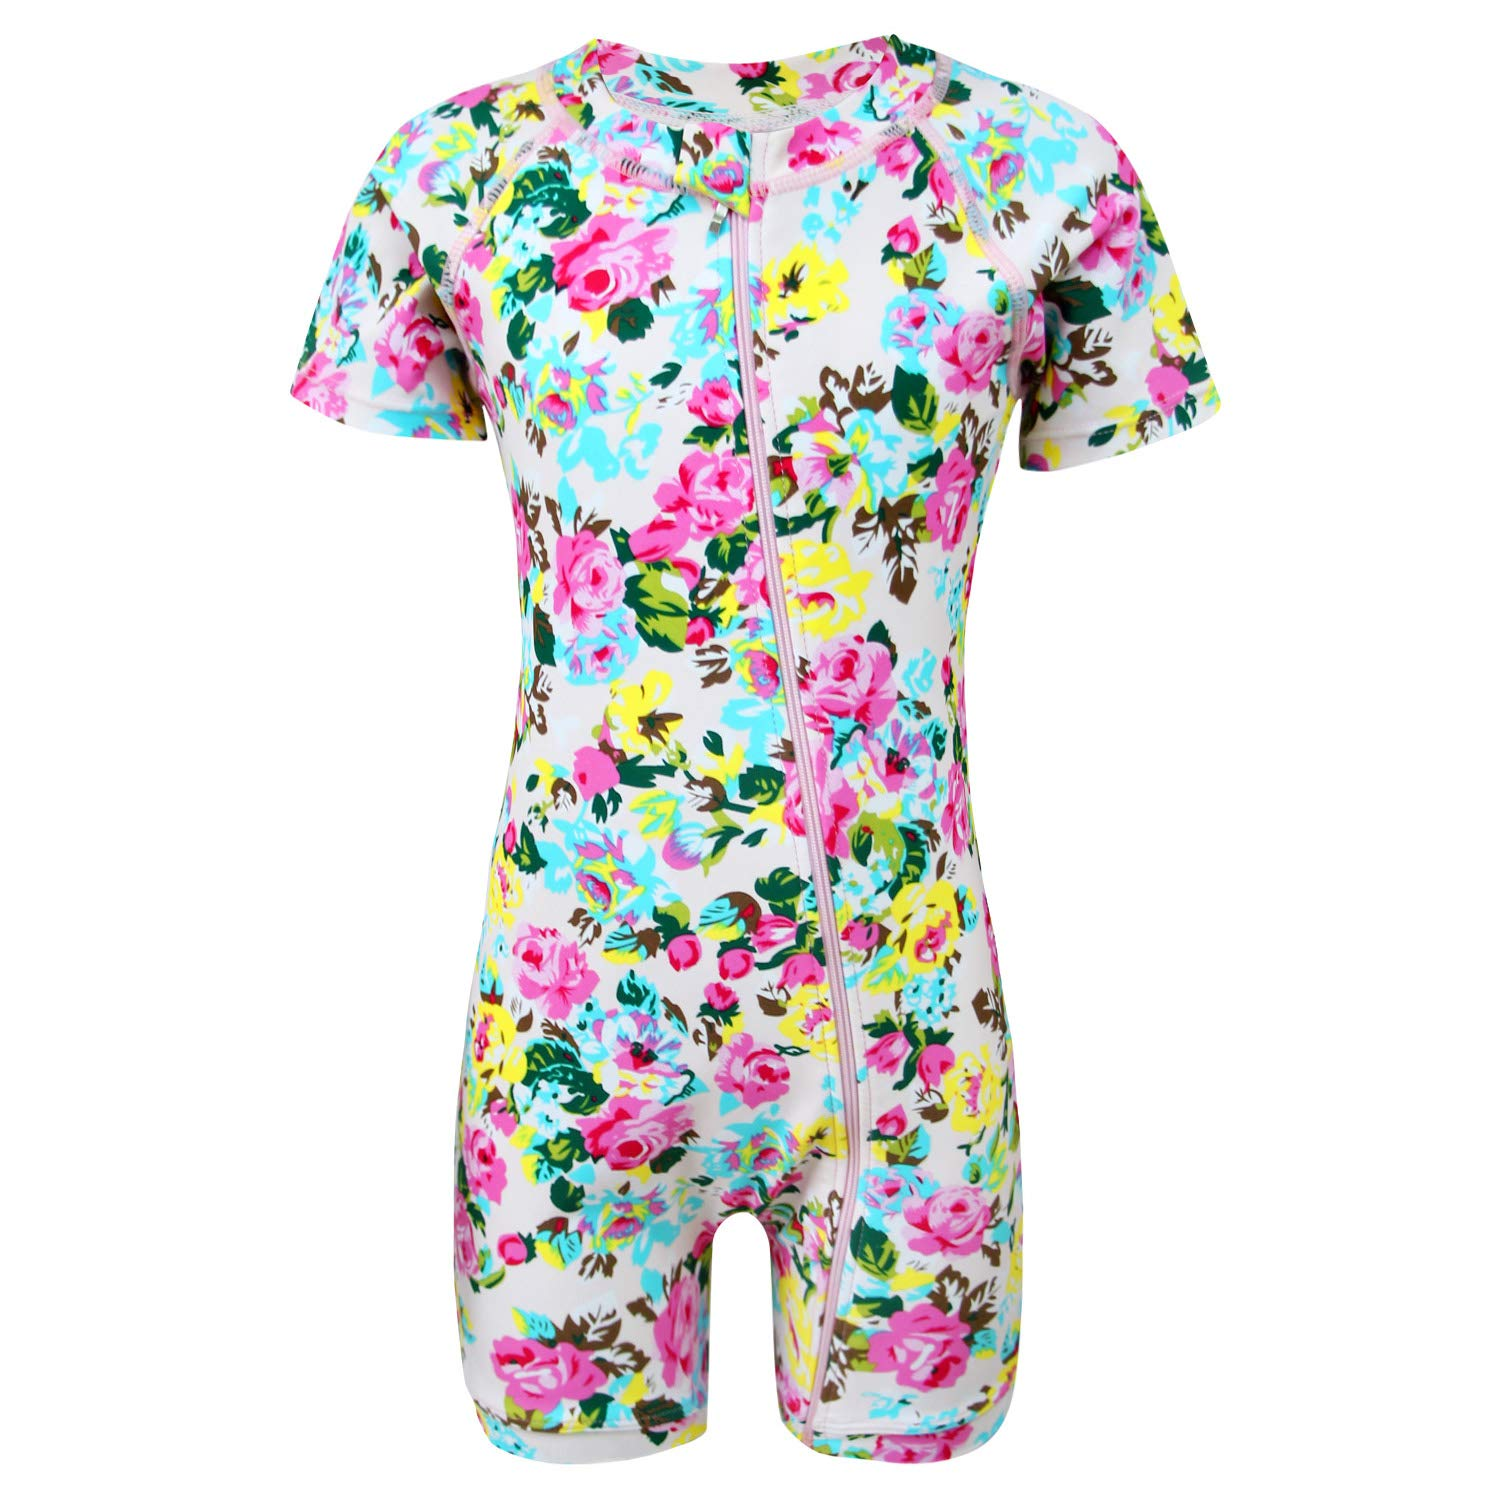 qyqkfly Baby/Toddler Girls Full Zip UPF 50+ Sun Protection One Piece Swimsuit(FBA) (B-Pink Rose, 4T(3Y-4Y)) by qyqkfly